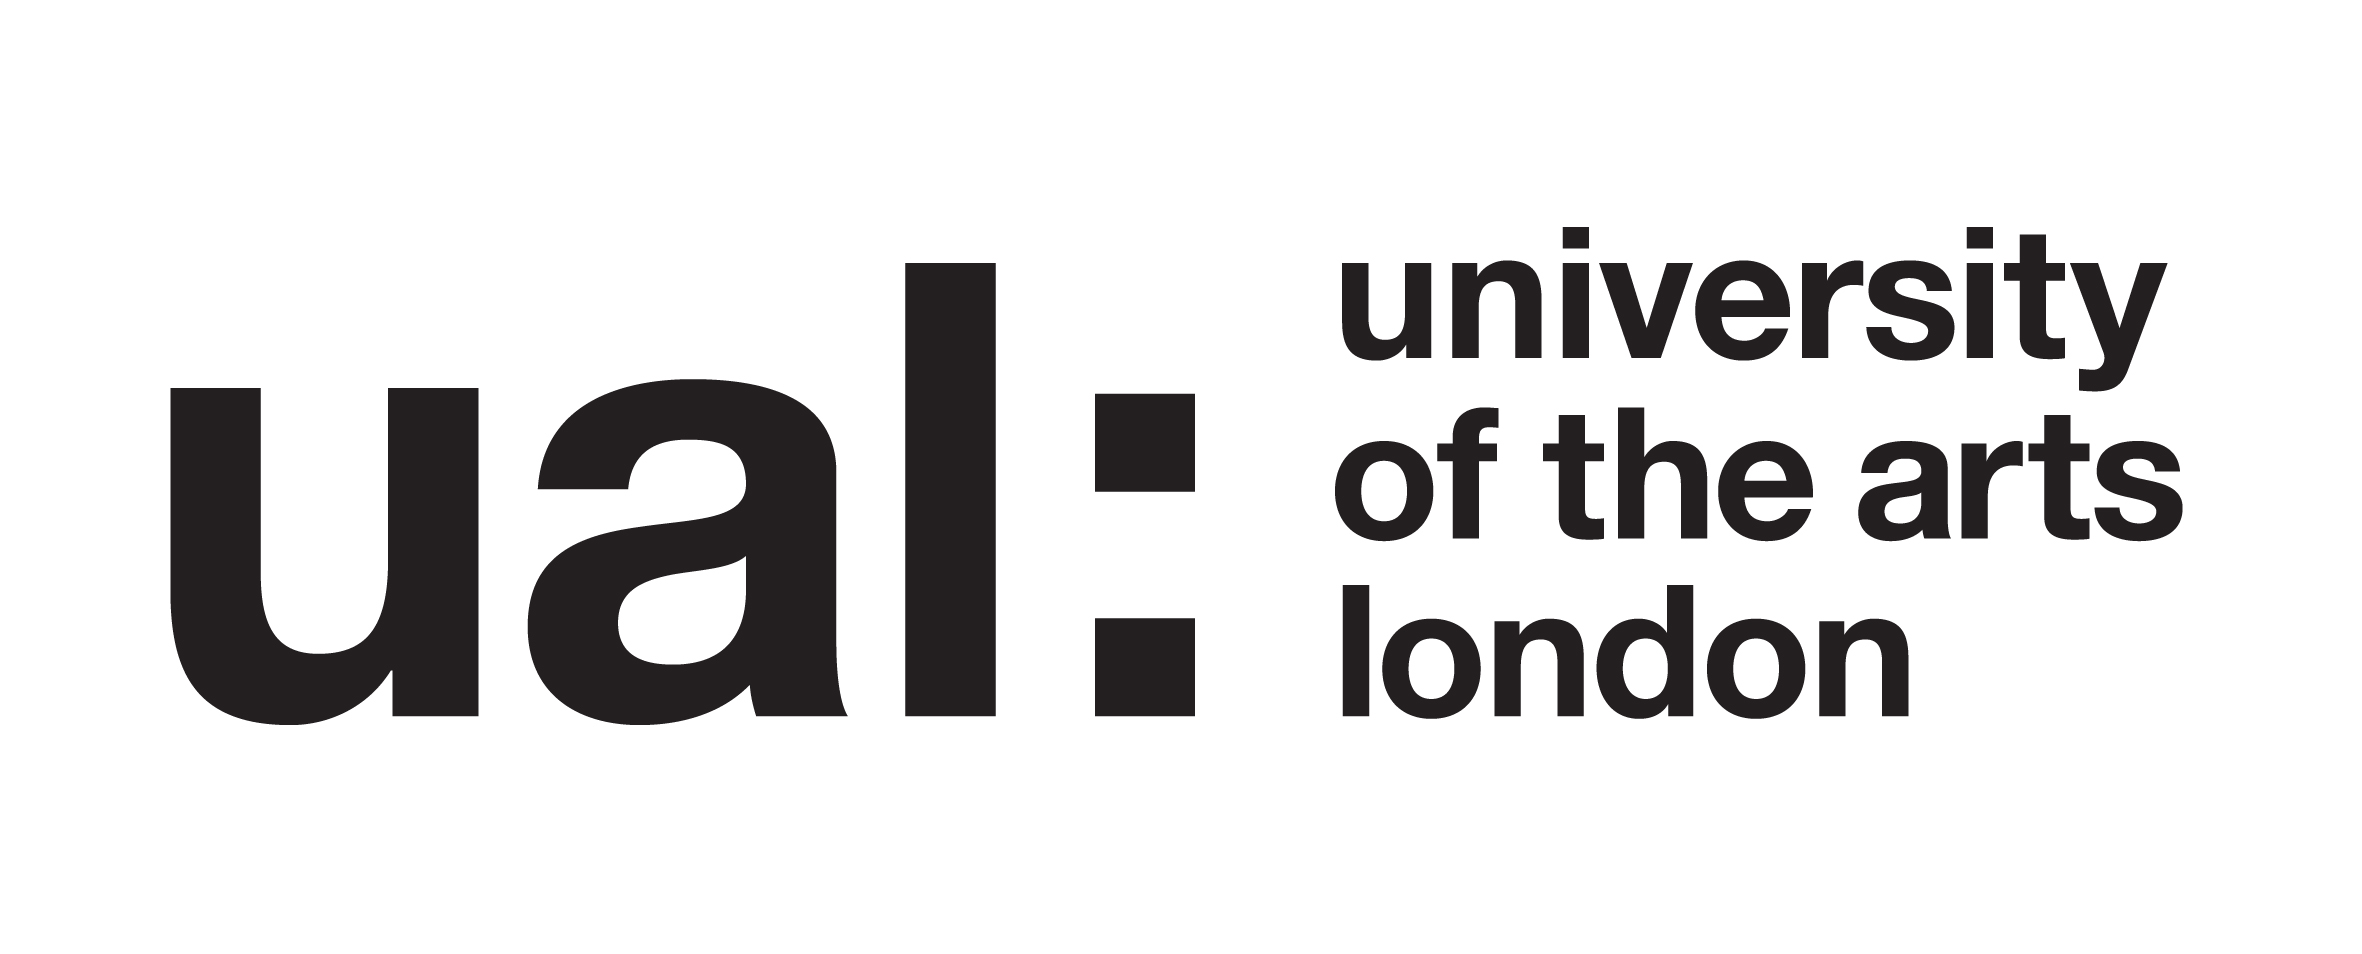 start your creative future at university of the arts